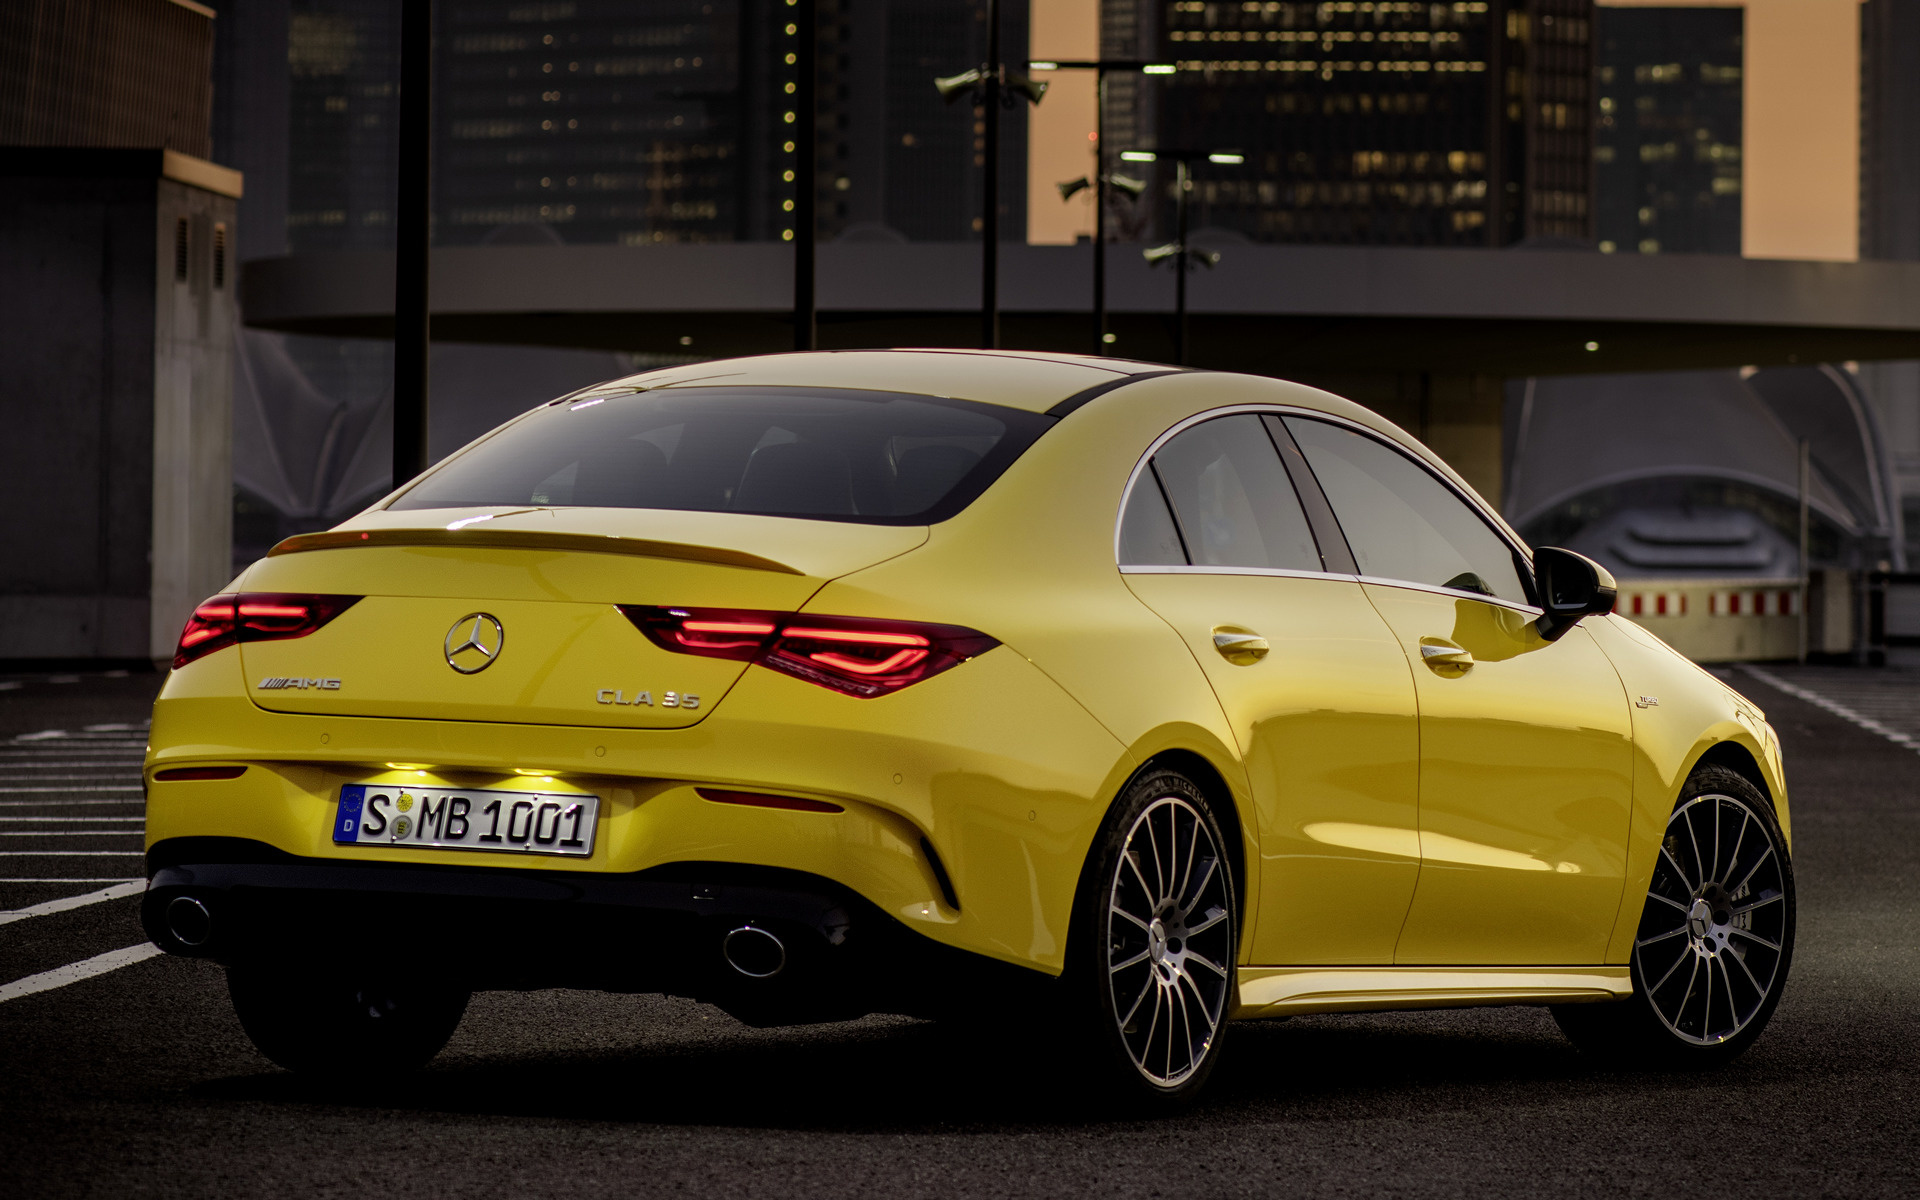 Mercedes Benz Cla >> 2019 Mercedes-AMG CLA 35 - Wallpapers and HD Images | Car Pixel